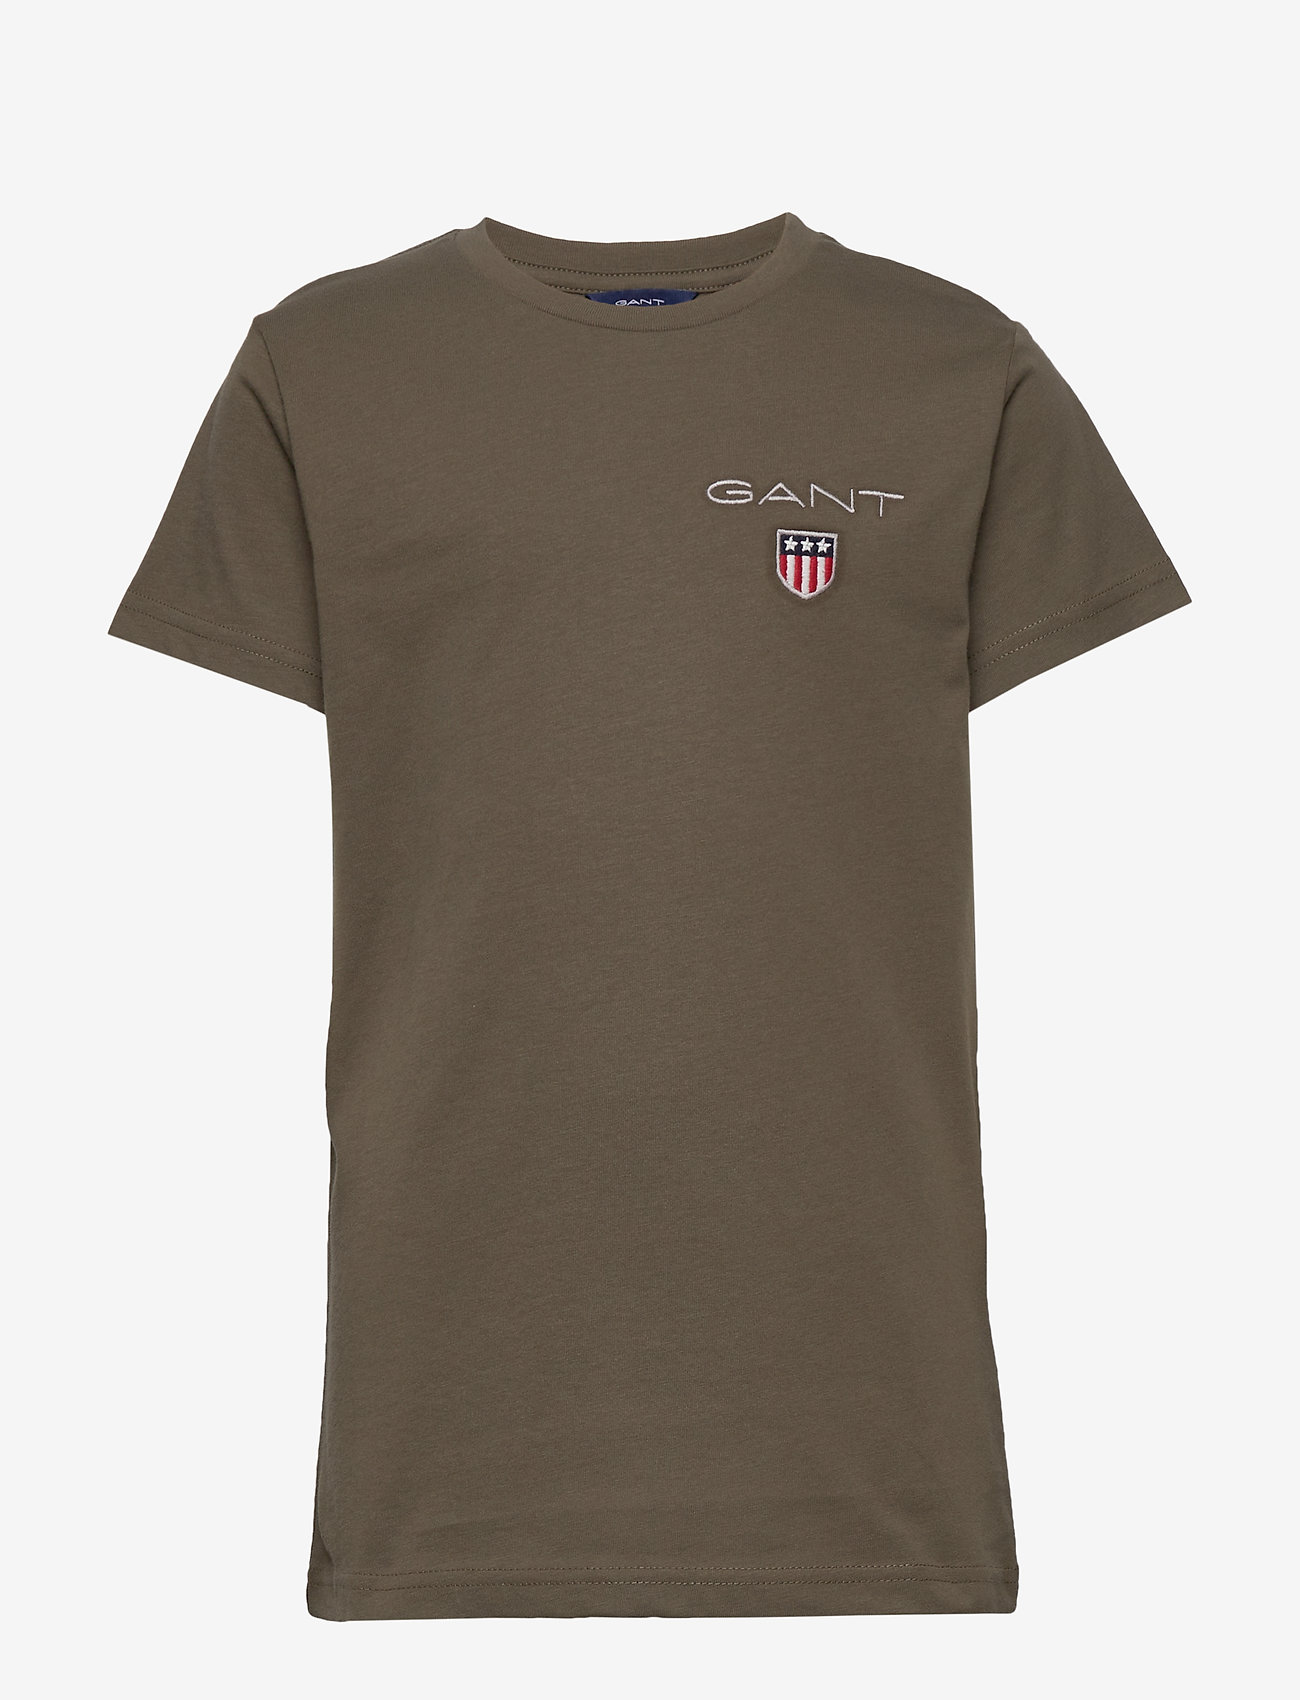 GANT - D1. MEDIUM SHIELD SS T-SHIRT - kurzärmelige - sea turtle - 0